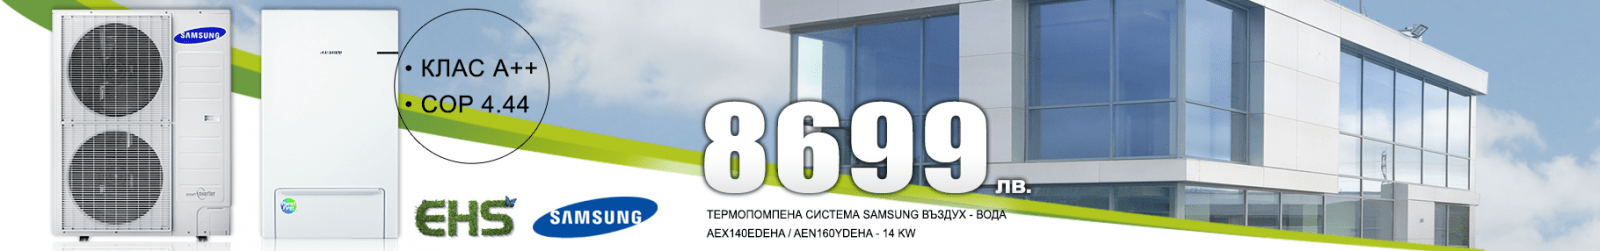 samsung-heatpump-banner-new